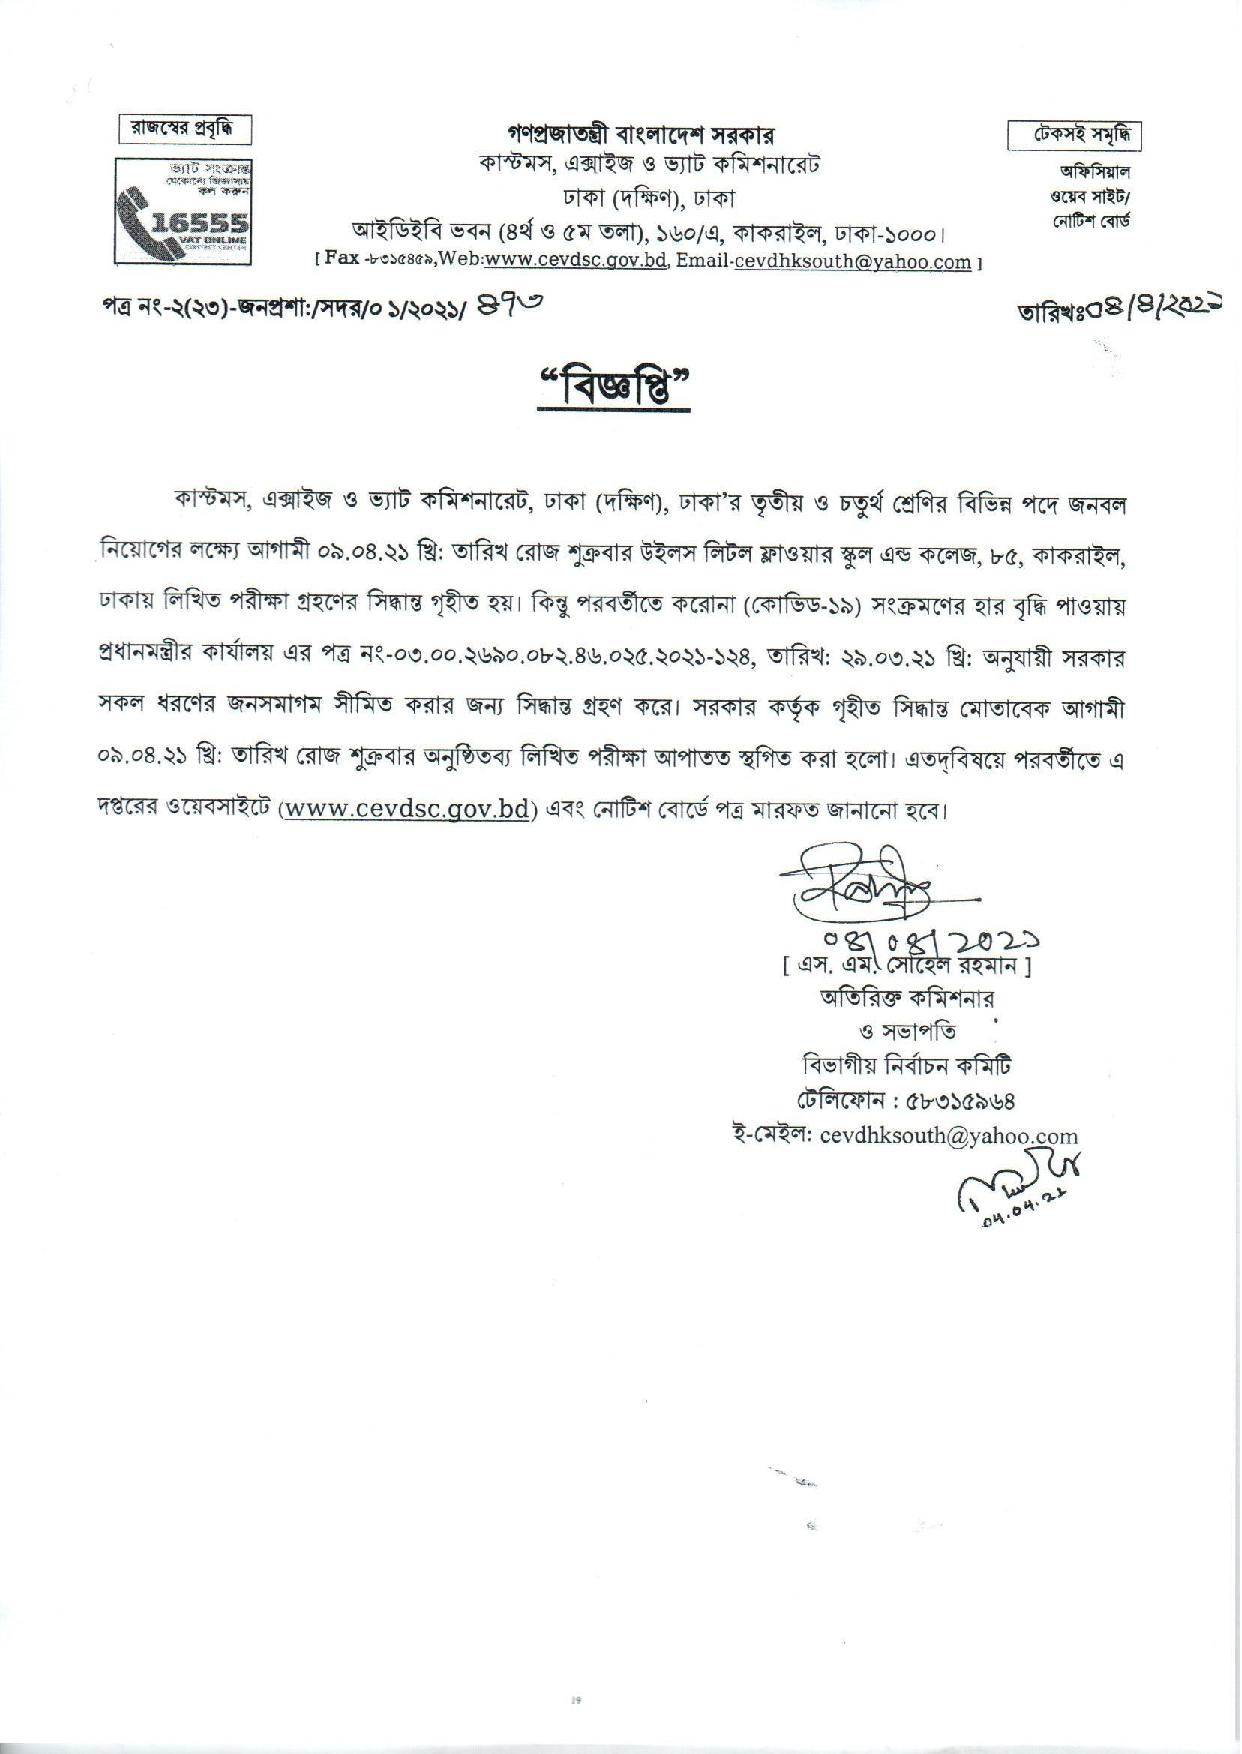 Customs, Excise & VAT Commissionerate, Dhaka(South) Exam date